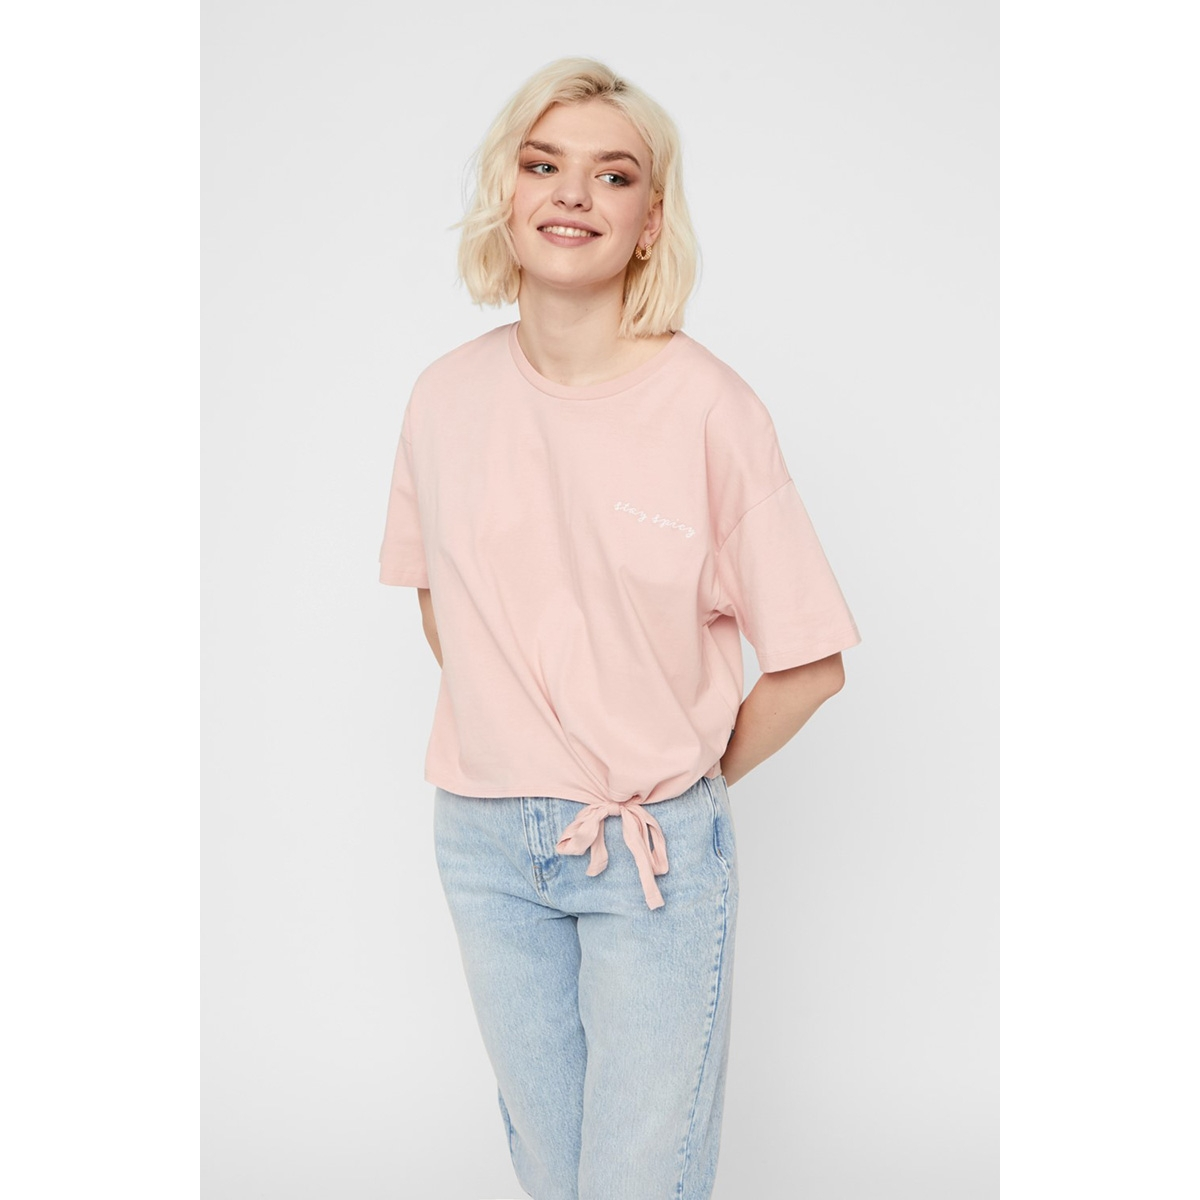 nmkick 2/4 top bg 27011007 noisy may t-shirt silver pink/stay spicy